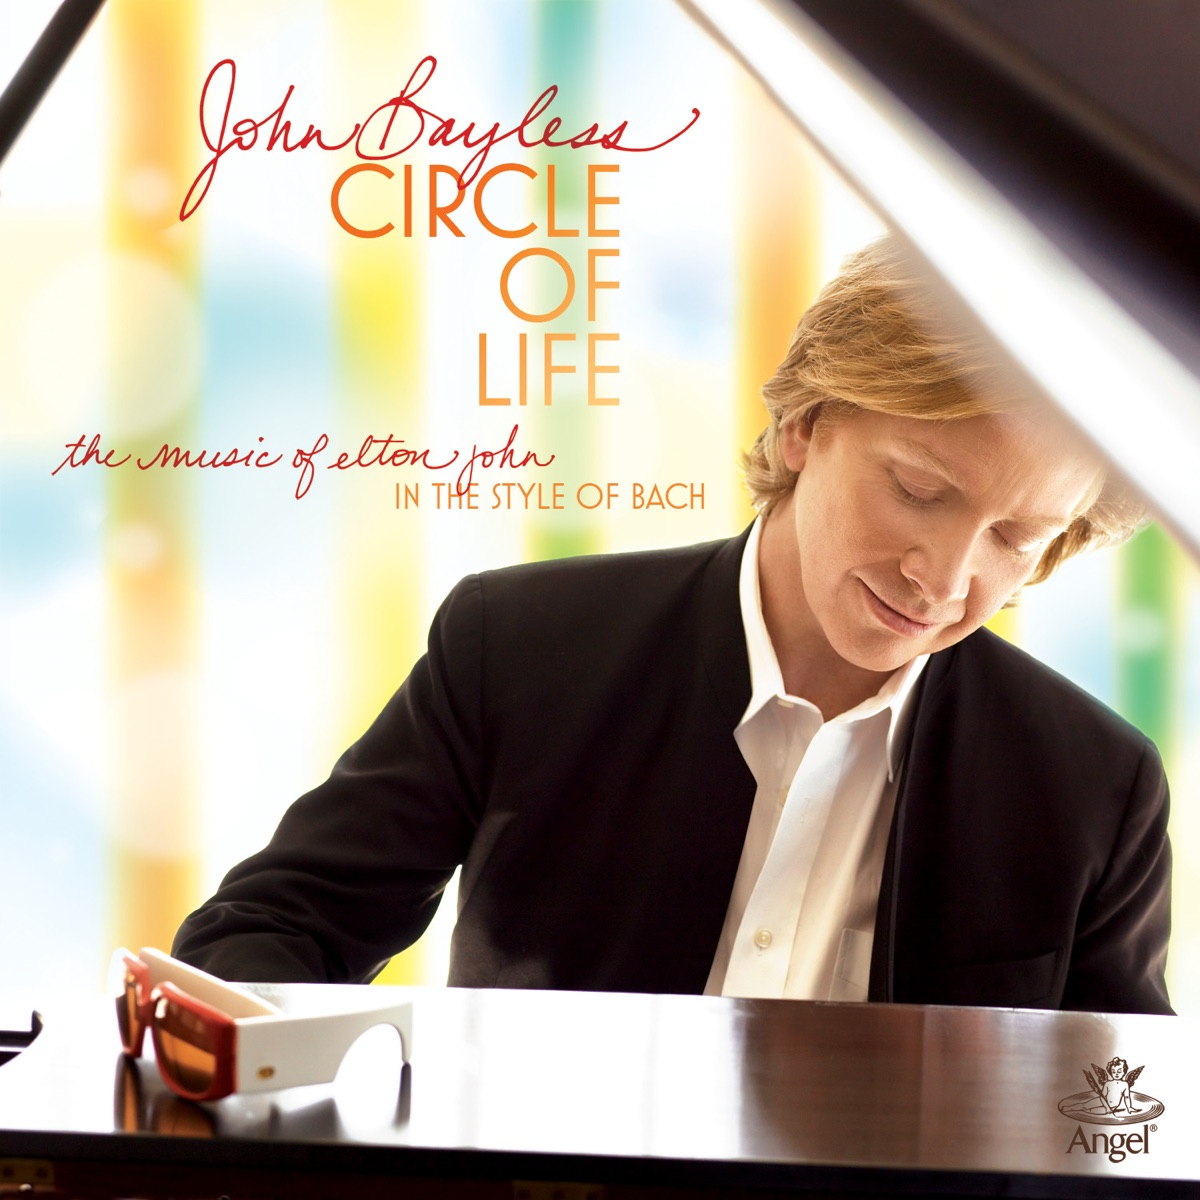 The Circle of Life - Bach Improvisations On Themes By Elton John John Bayless CD cover